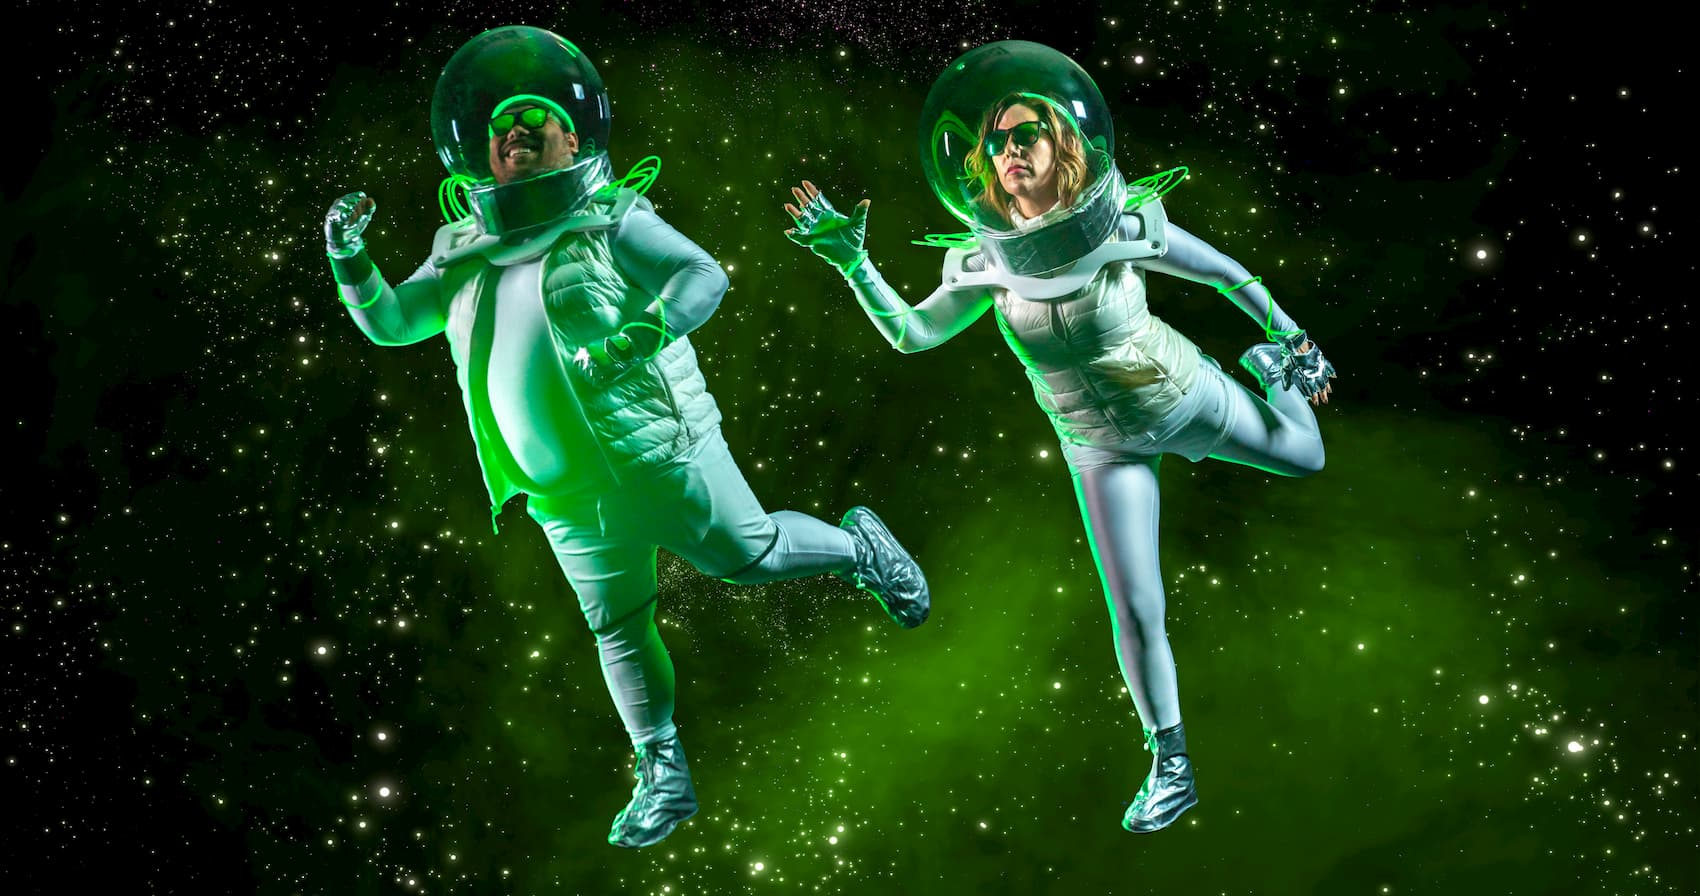 Man and woman running in space with sunglasses on